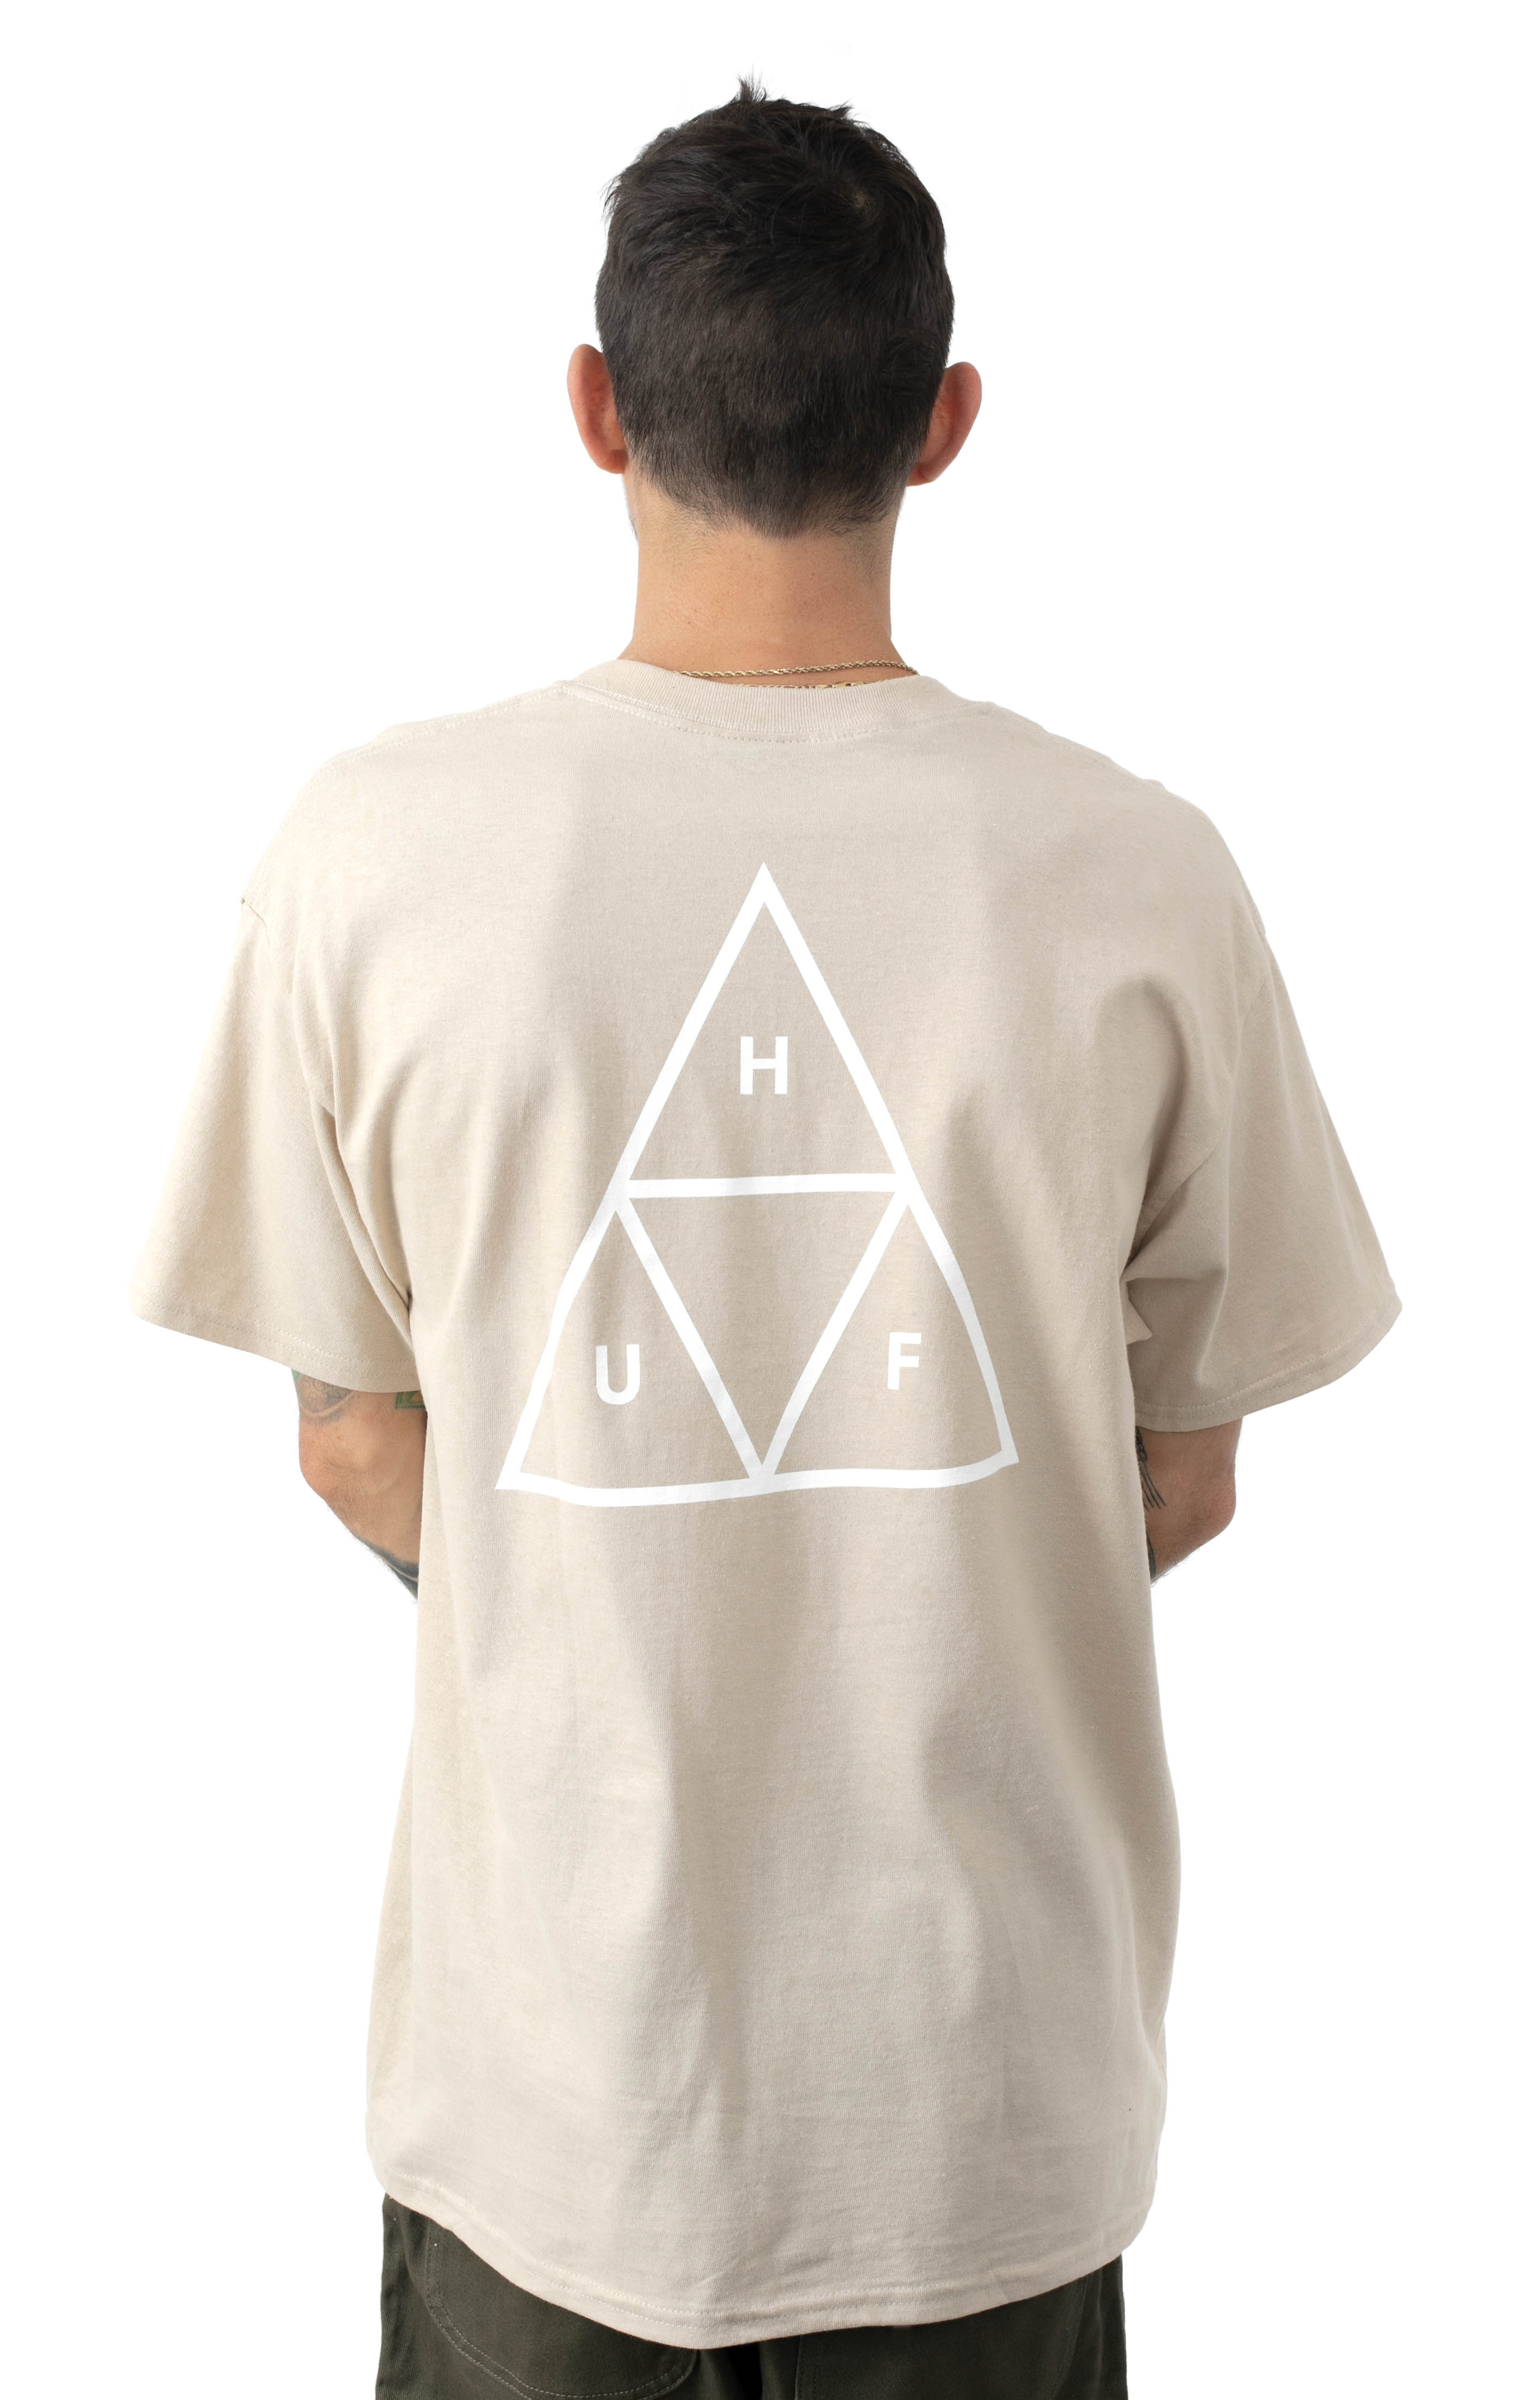 Essentials TT T-Shirt - Camel  3